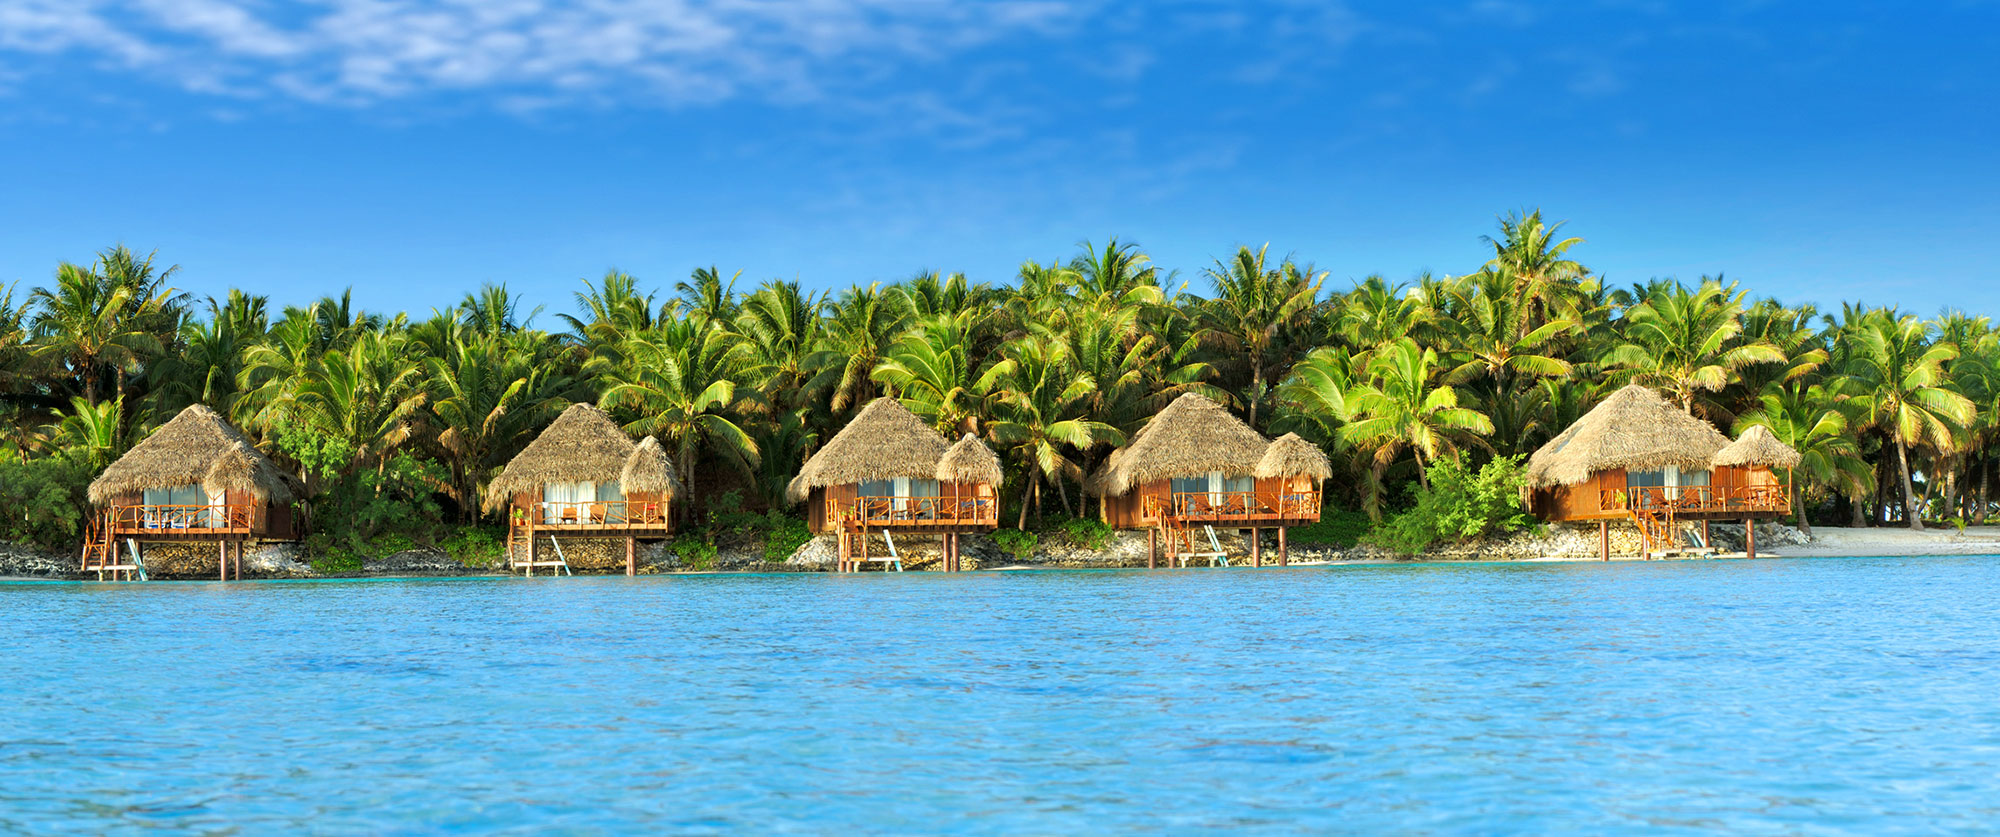 Cook Islands Overwater Bungalow Vacation - Aitutaki Lagoon Resort and Spa